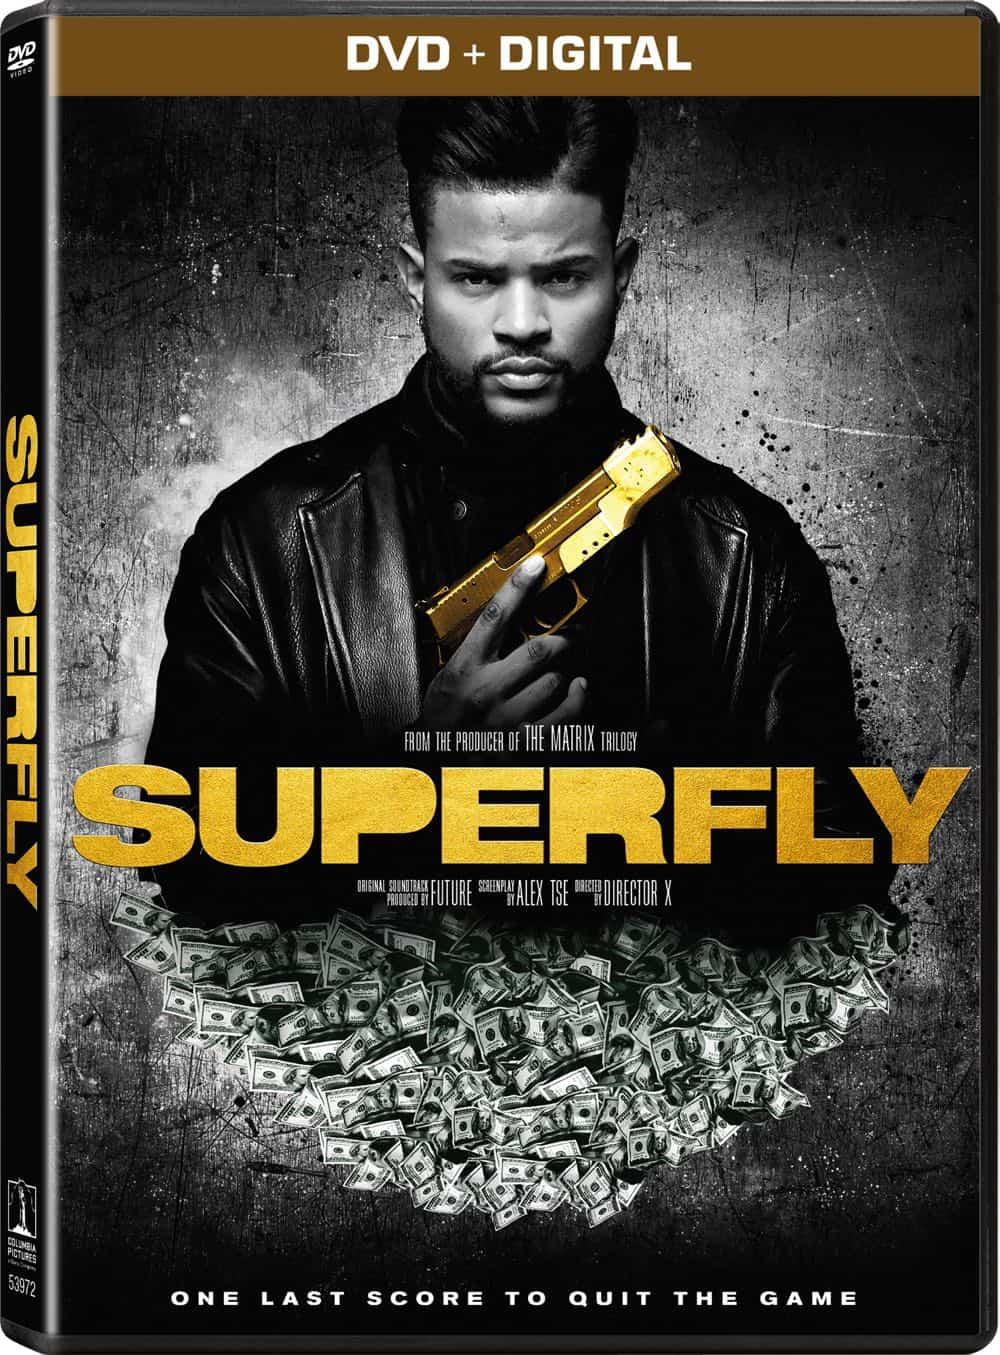 Superfly DVD Digital